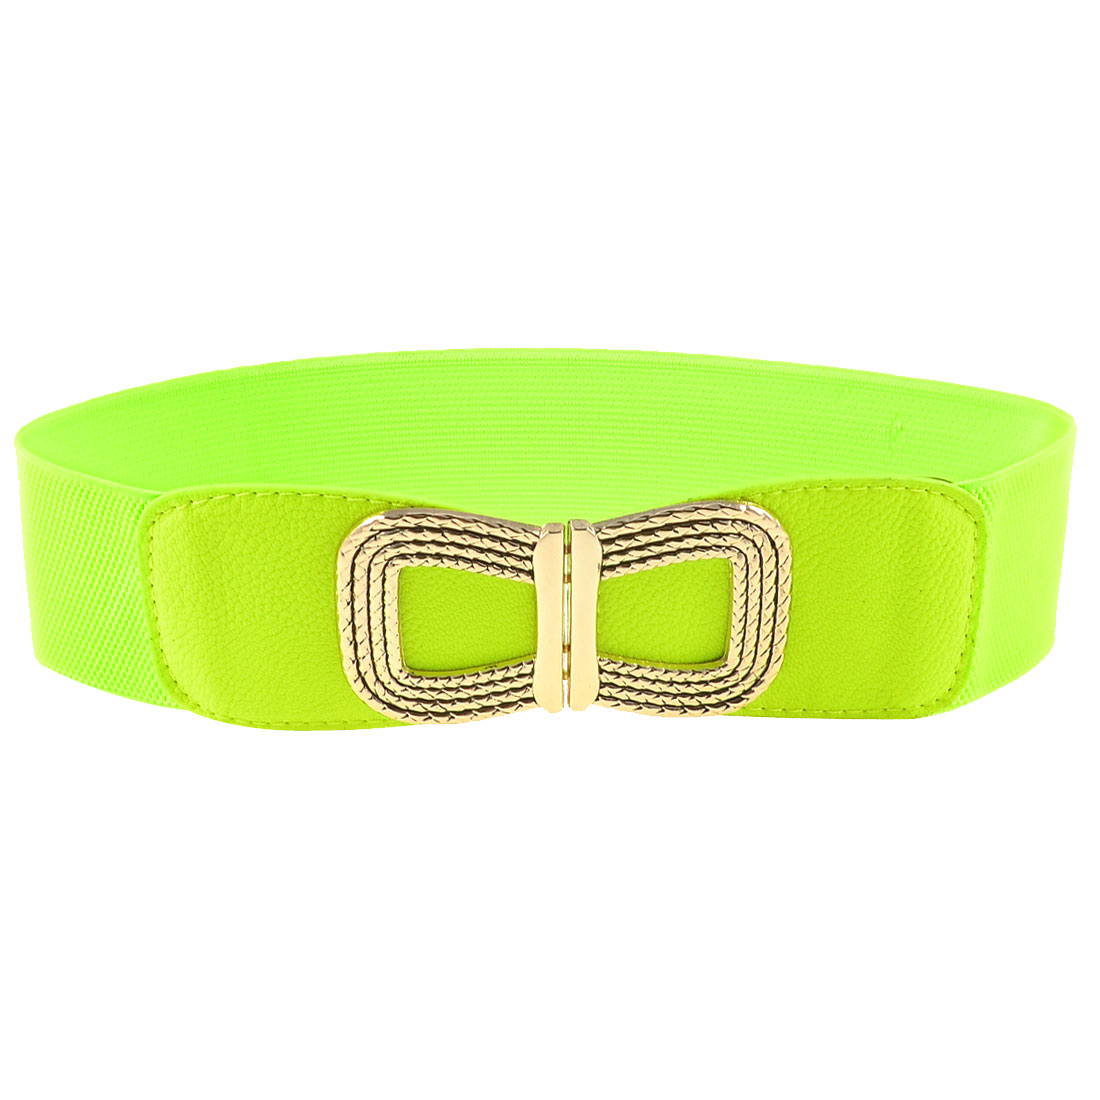 Women Gold Tone Metal Bowknot Decorated Yellow Green Elastic Waist Belt Band